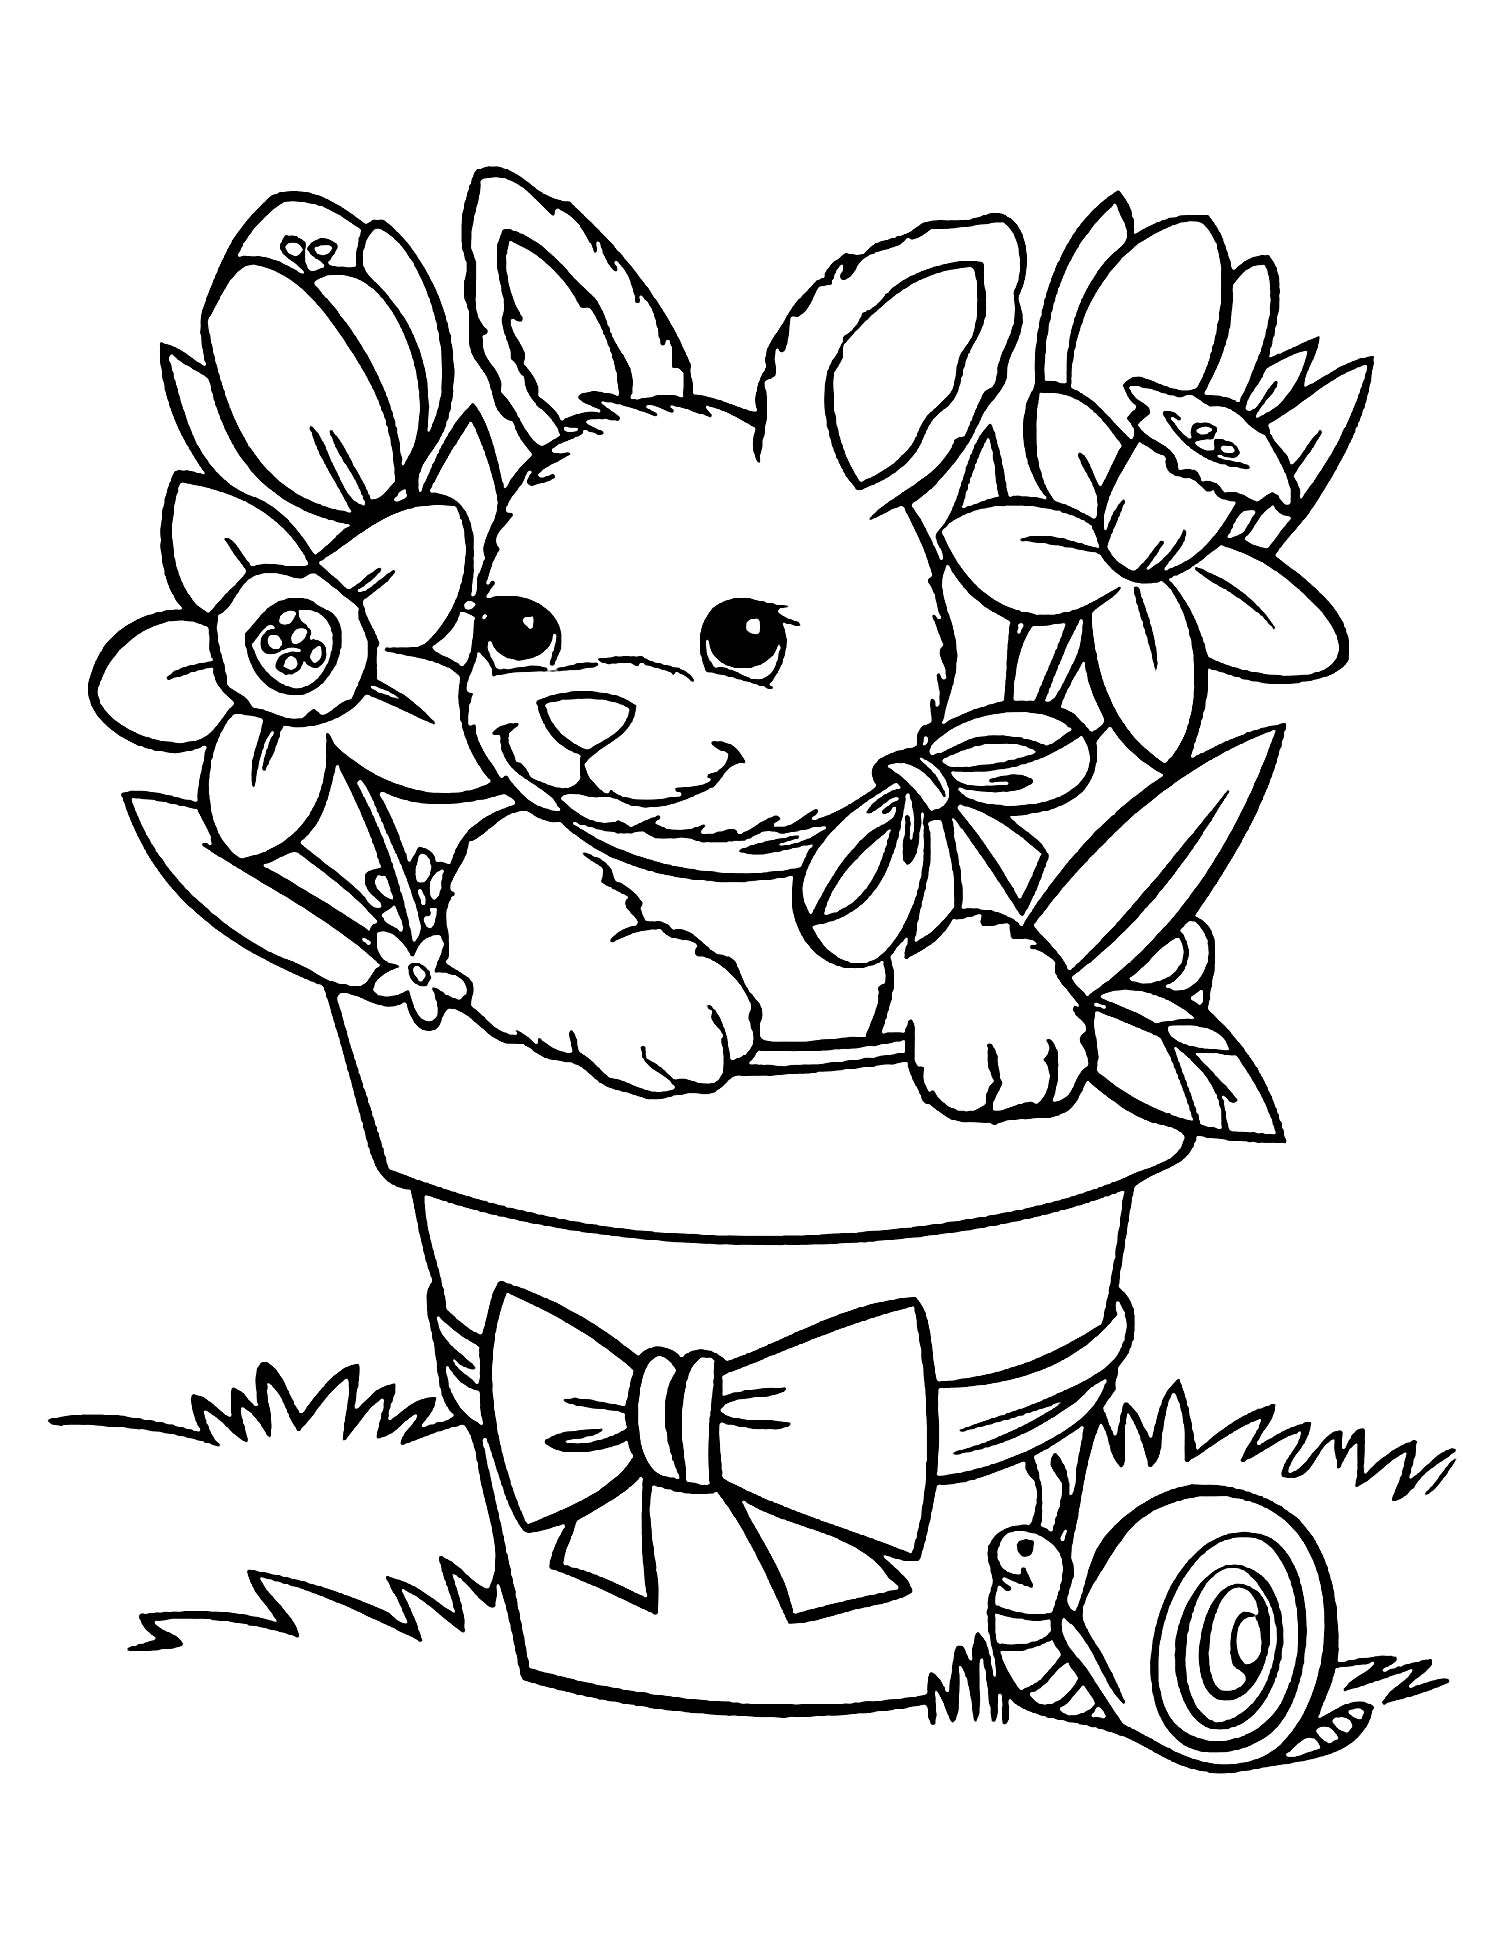 coloring pages of bunny rabbits coloring pages of a rabbit printable free coloring sheets pages coloring bunny rabbits of